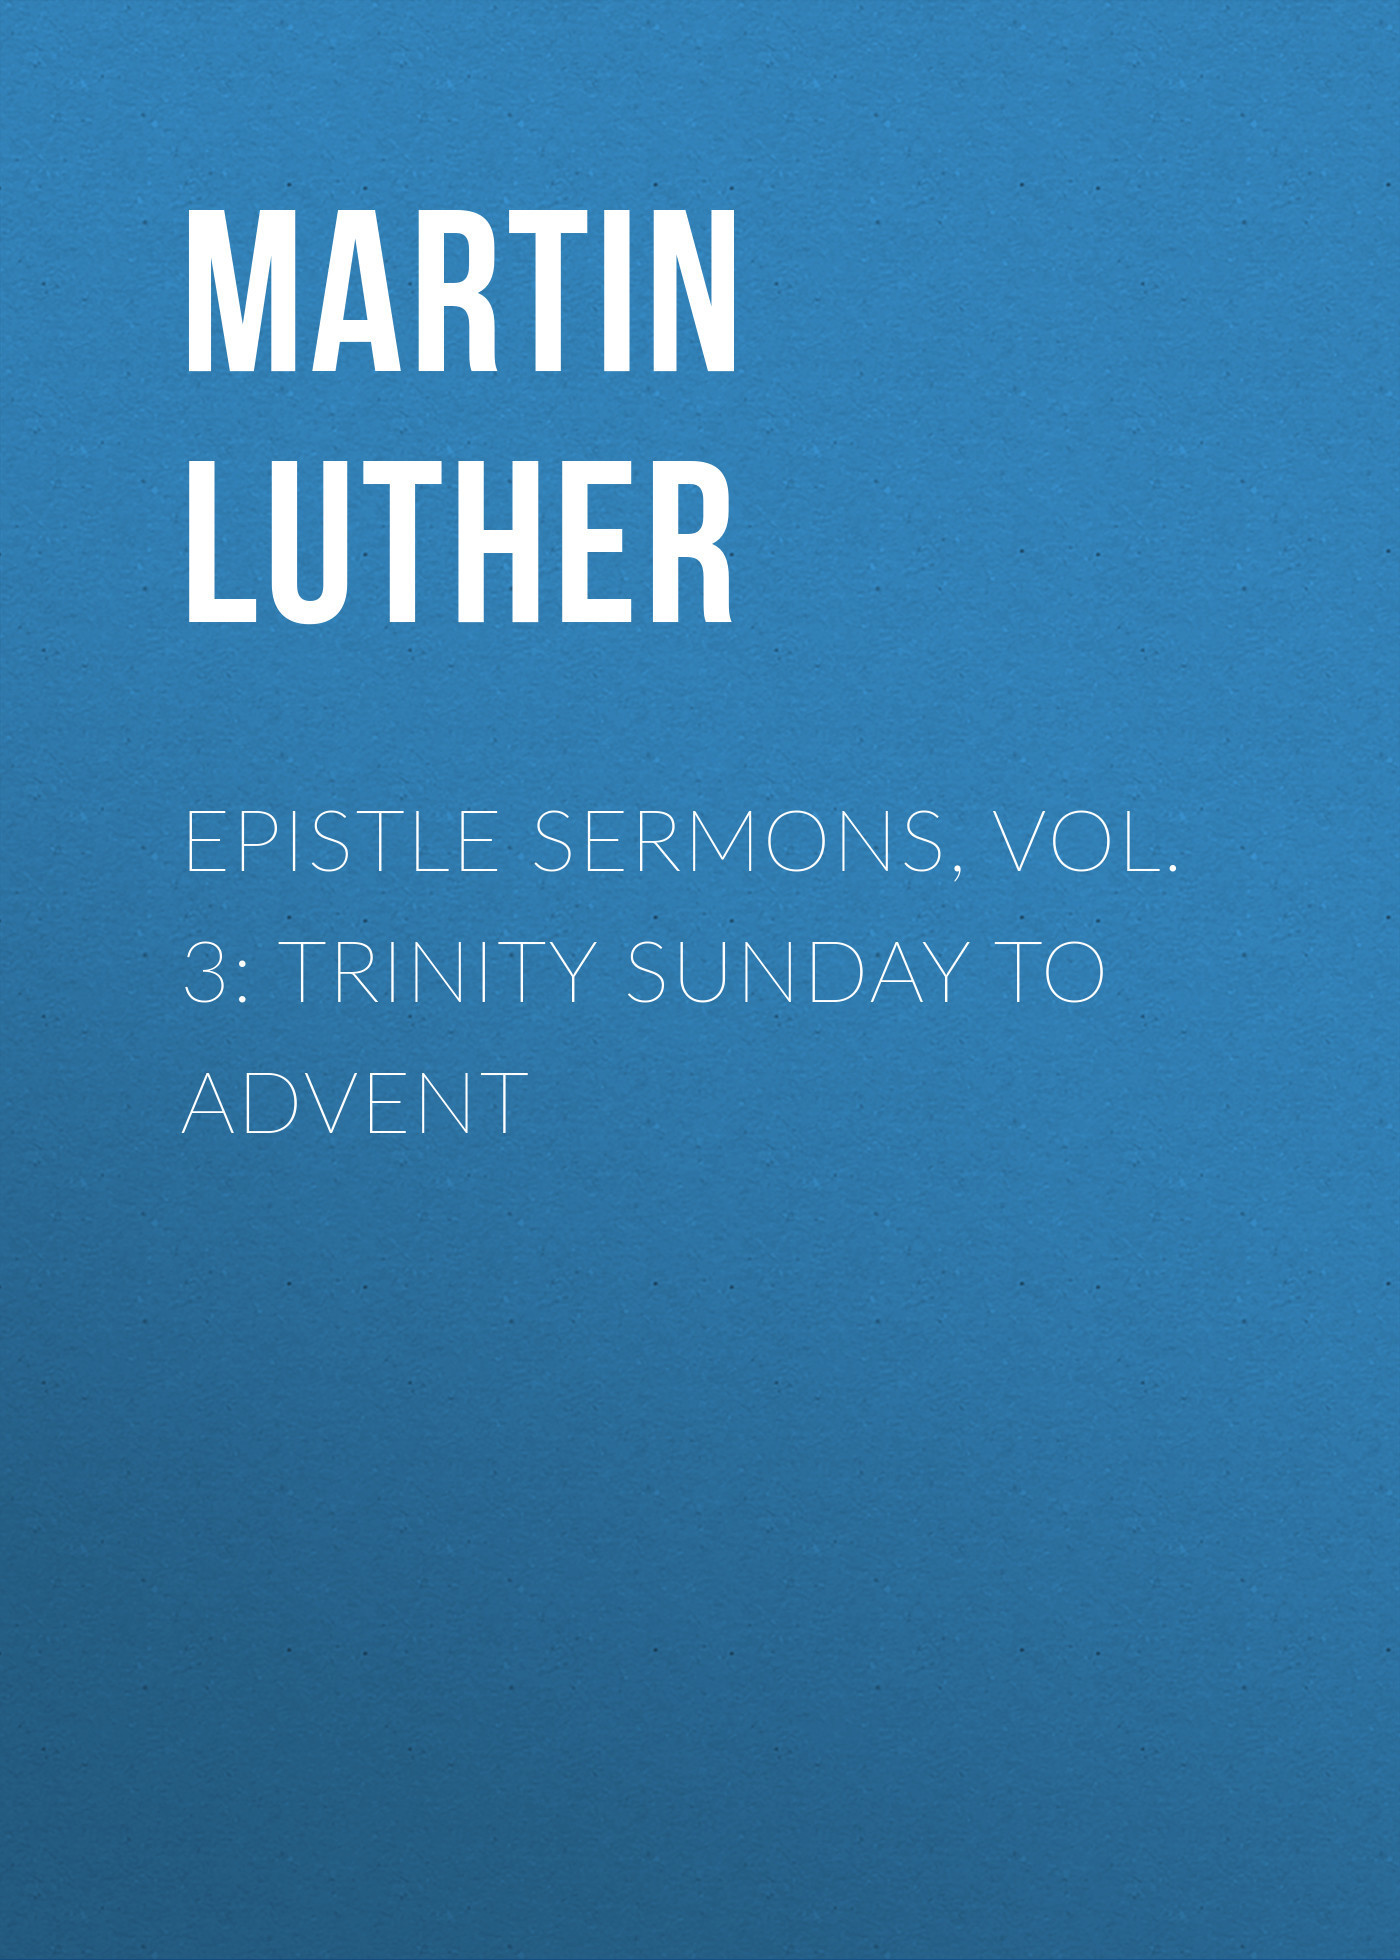 Martin Luther Epistle Sermons, Vol. 3: Trinity Sunday to Advent hugh blair sermons vol 3